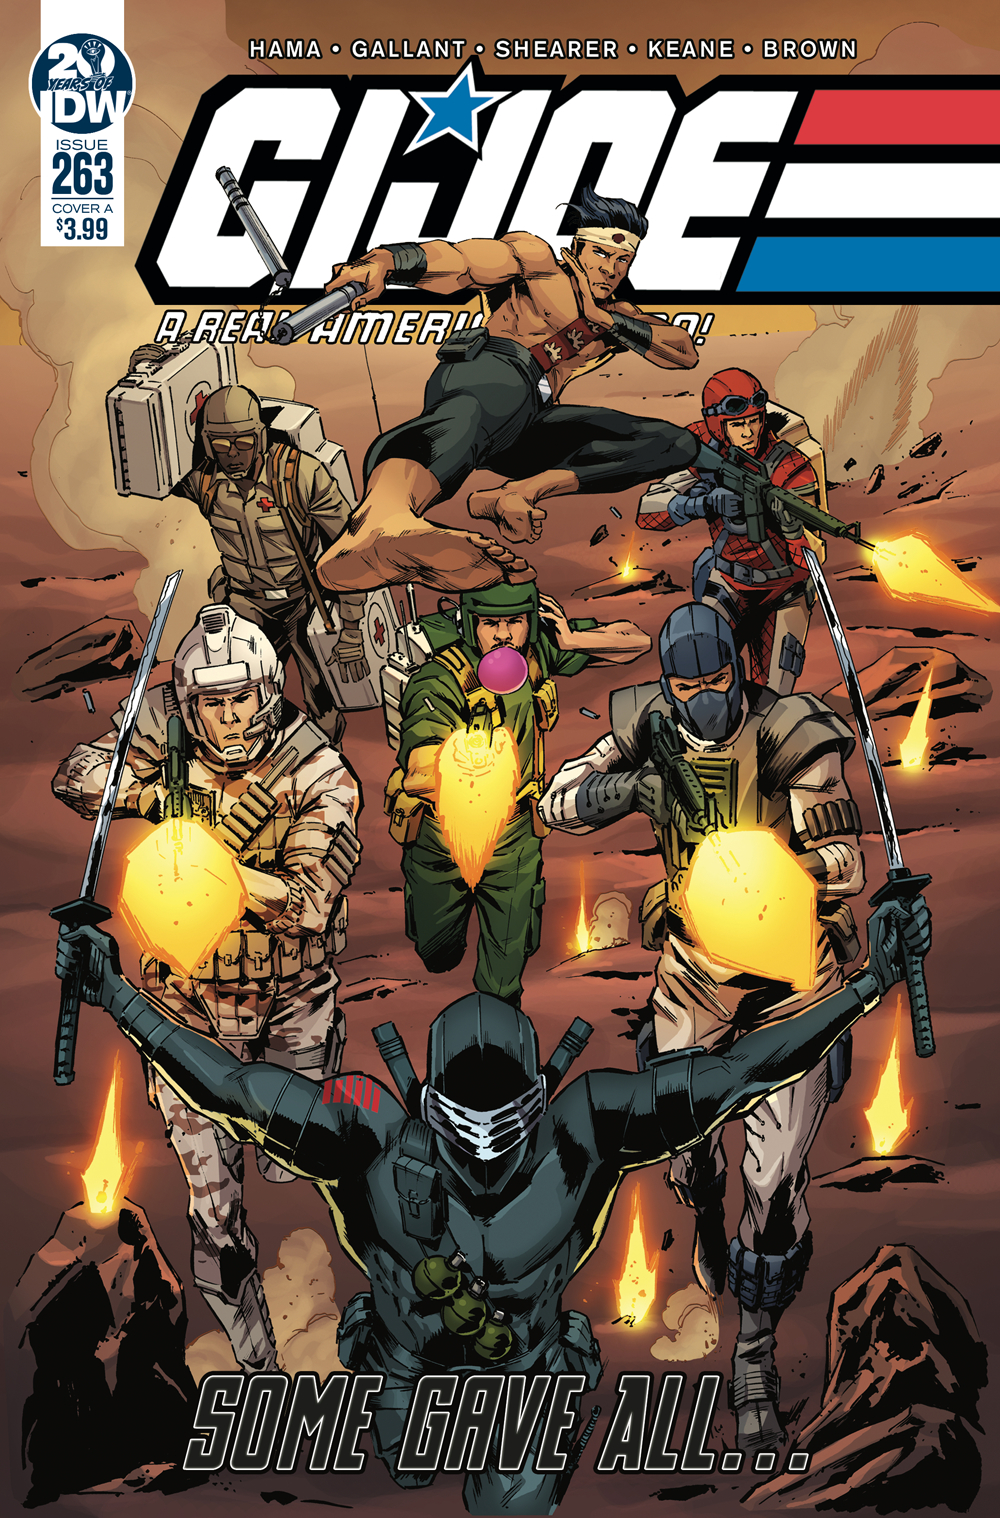 GI JOE A REAL AMERICAN HERO #263 CVR A GALLANT